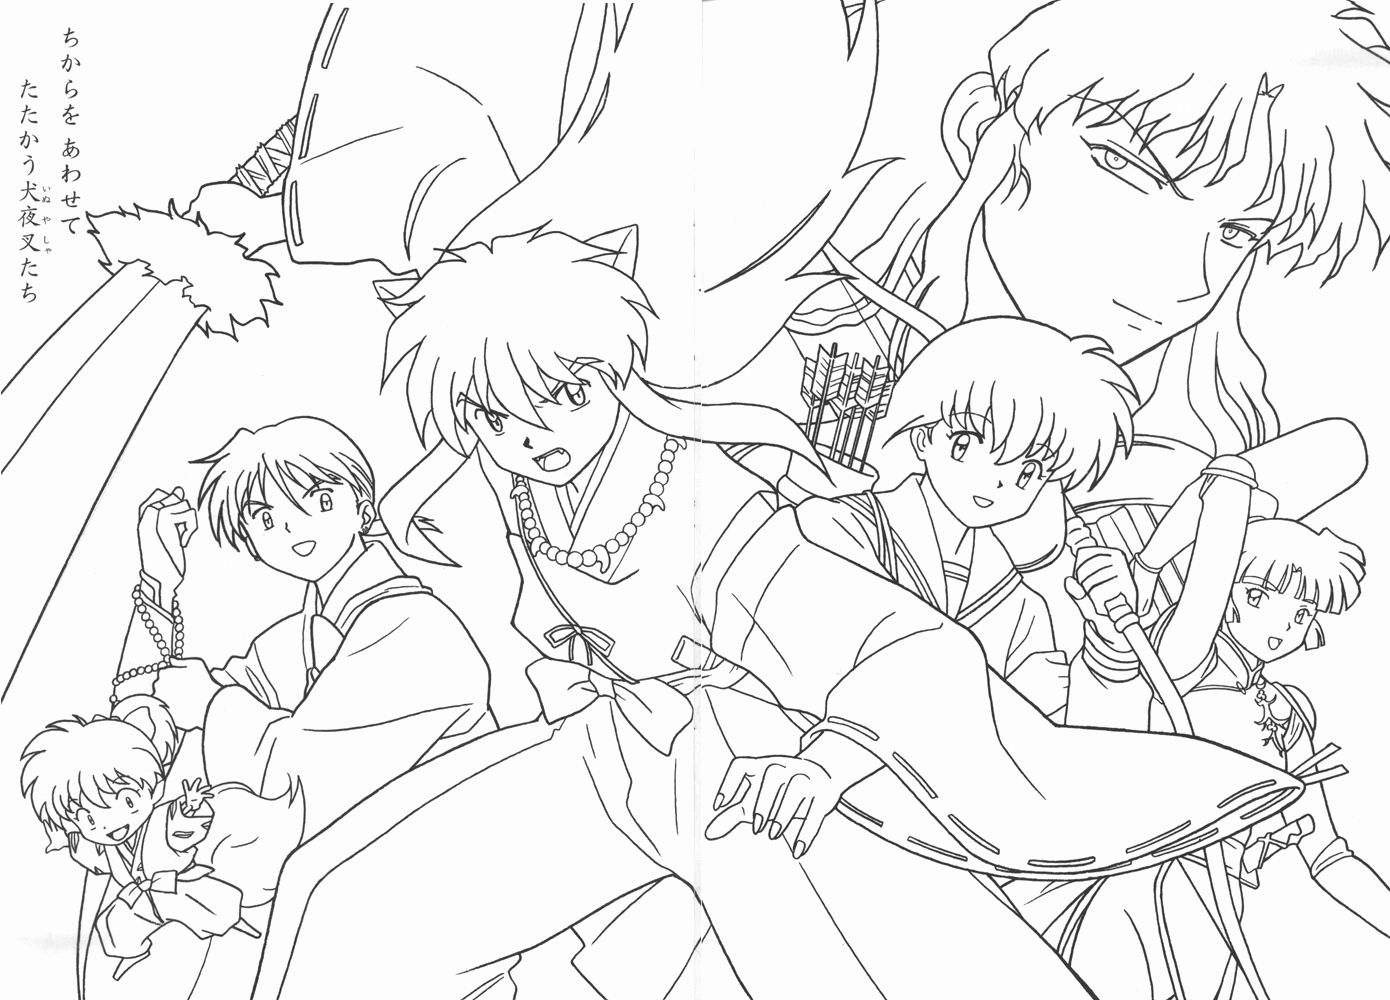 Anime Manga Coloring Book Luxury Inuyasha Coloring Book In 2020 Manga Coloring Book Coloring Books Coloring Pages